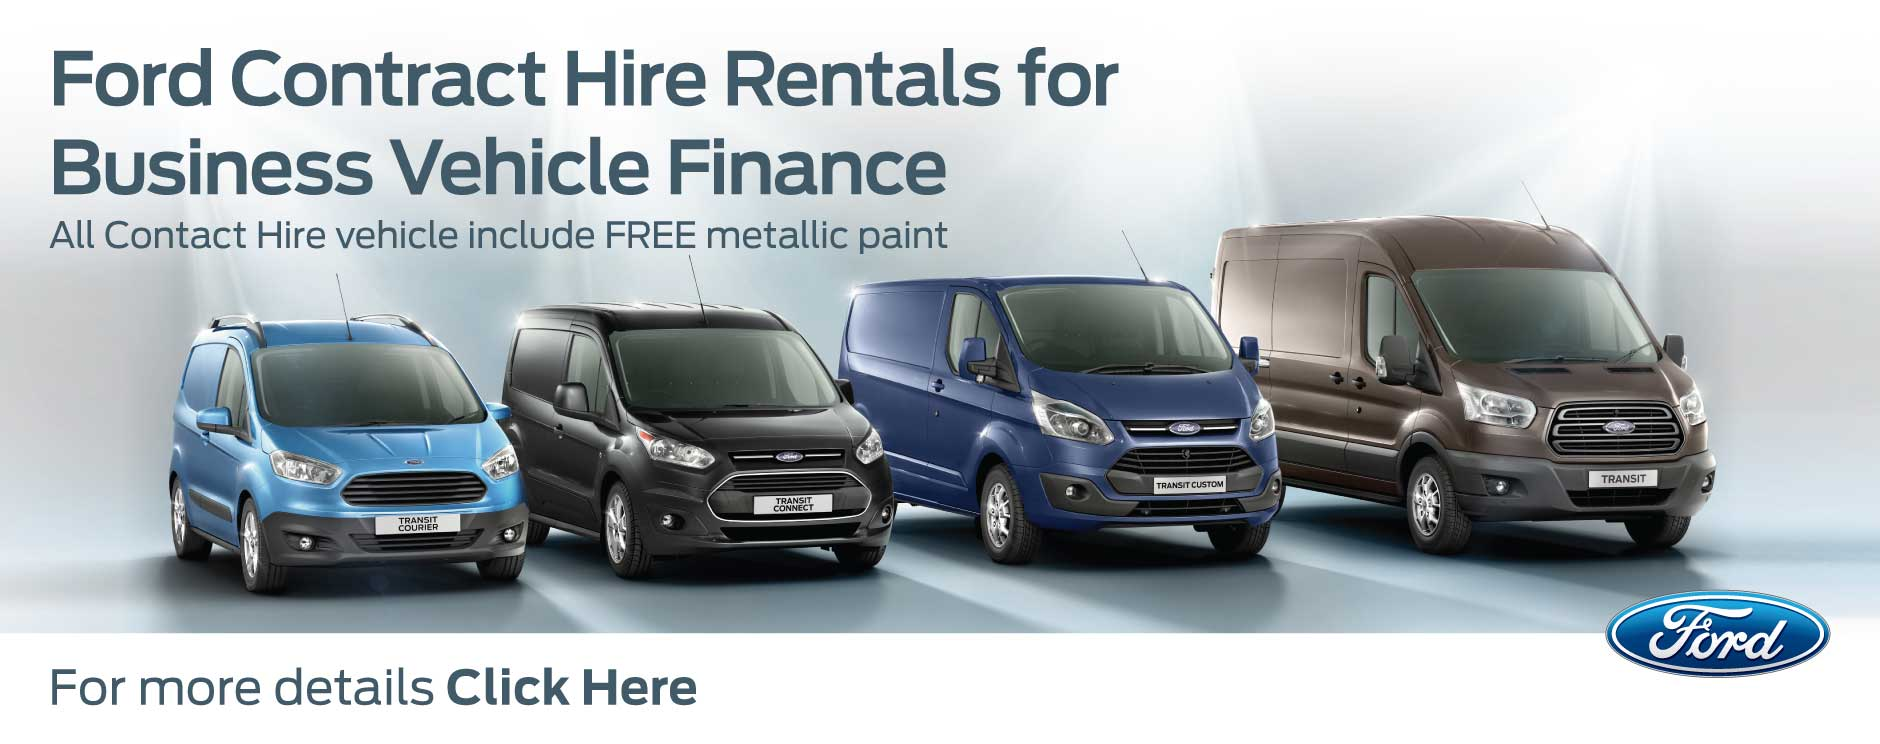 Ford Commercial Contract Hire